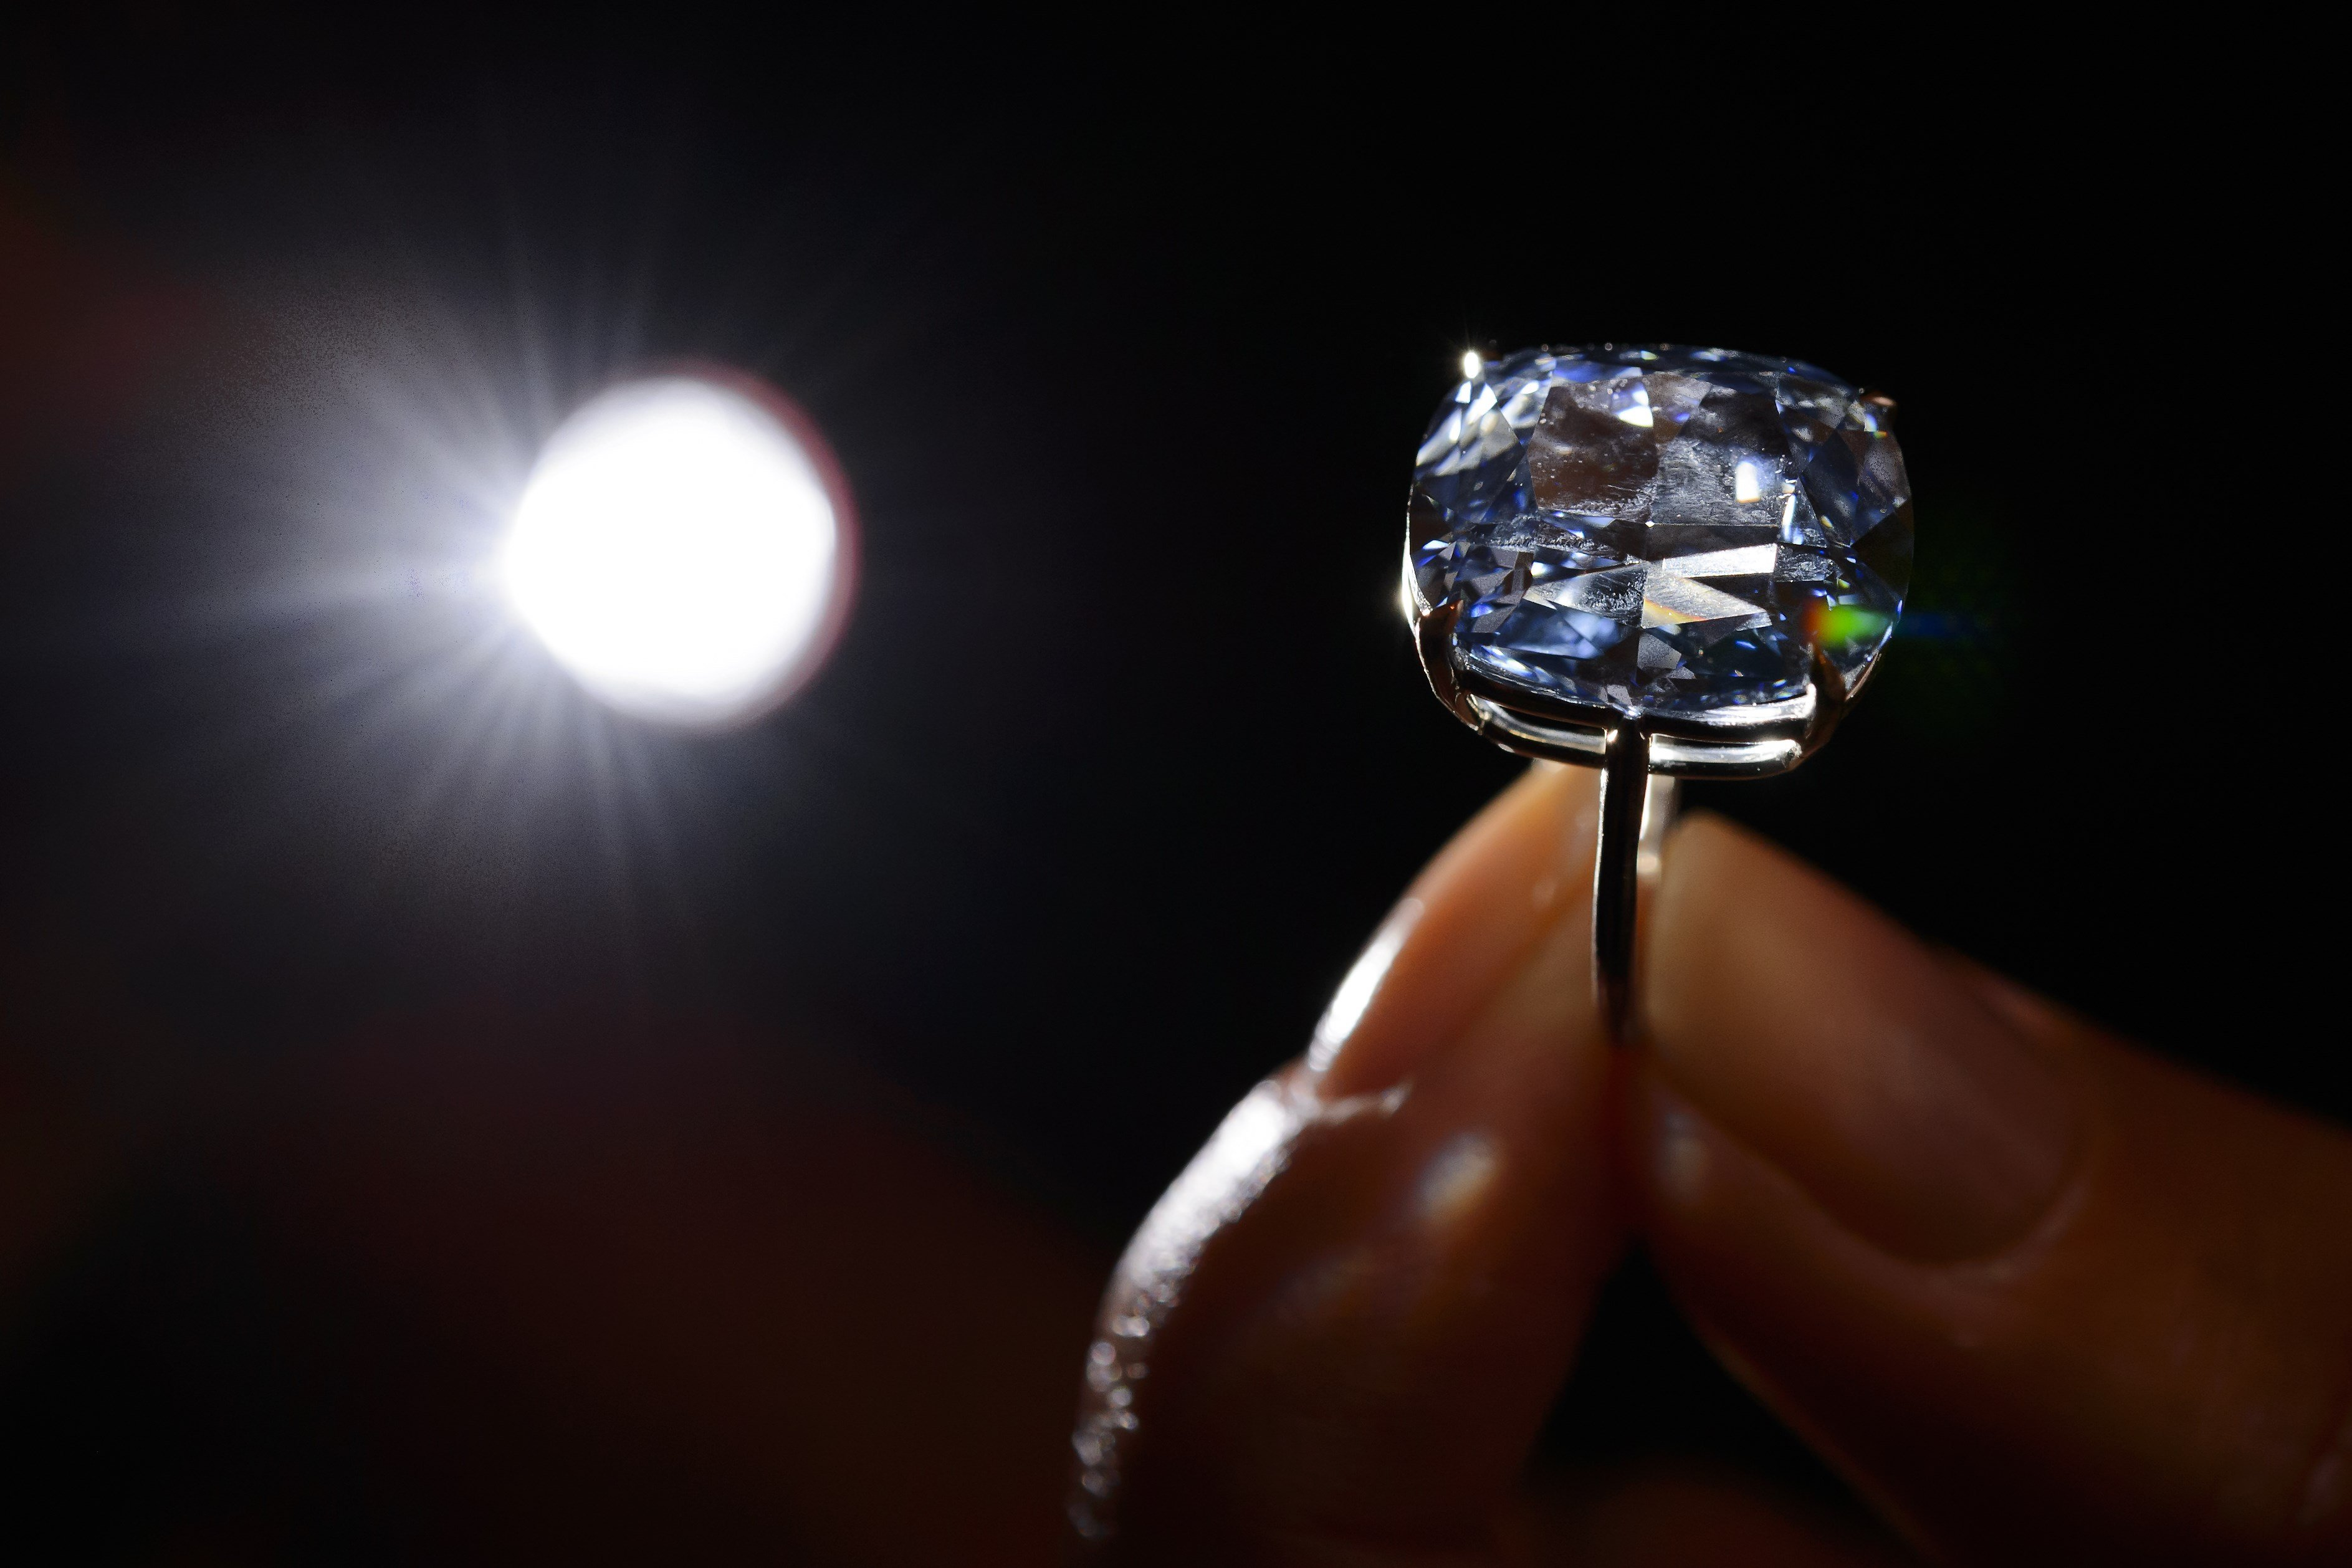 A model holds the 12.03-carat Blue Moon diamond during a press preview by auction house Sotheby's in Geneva on Nov. 4, 2015.